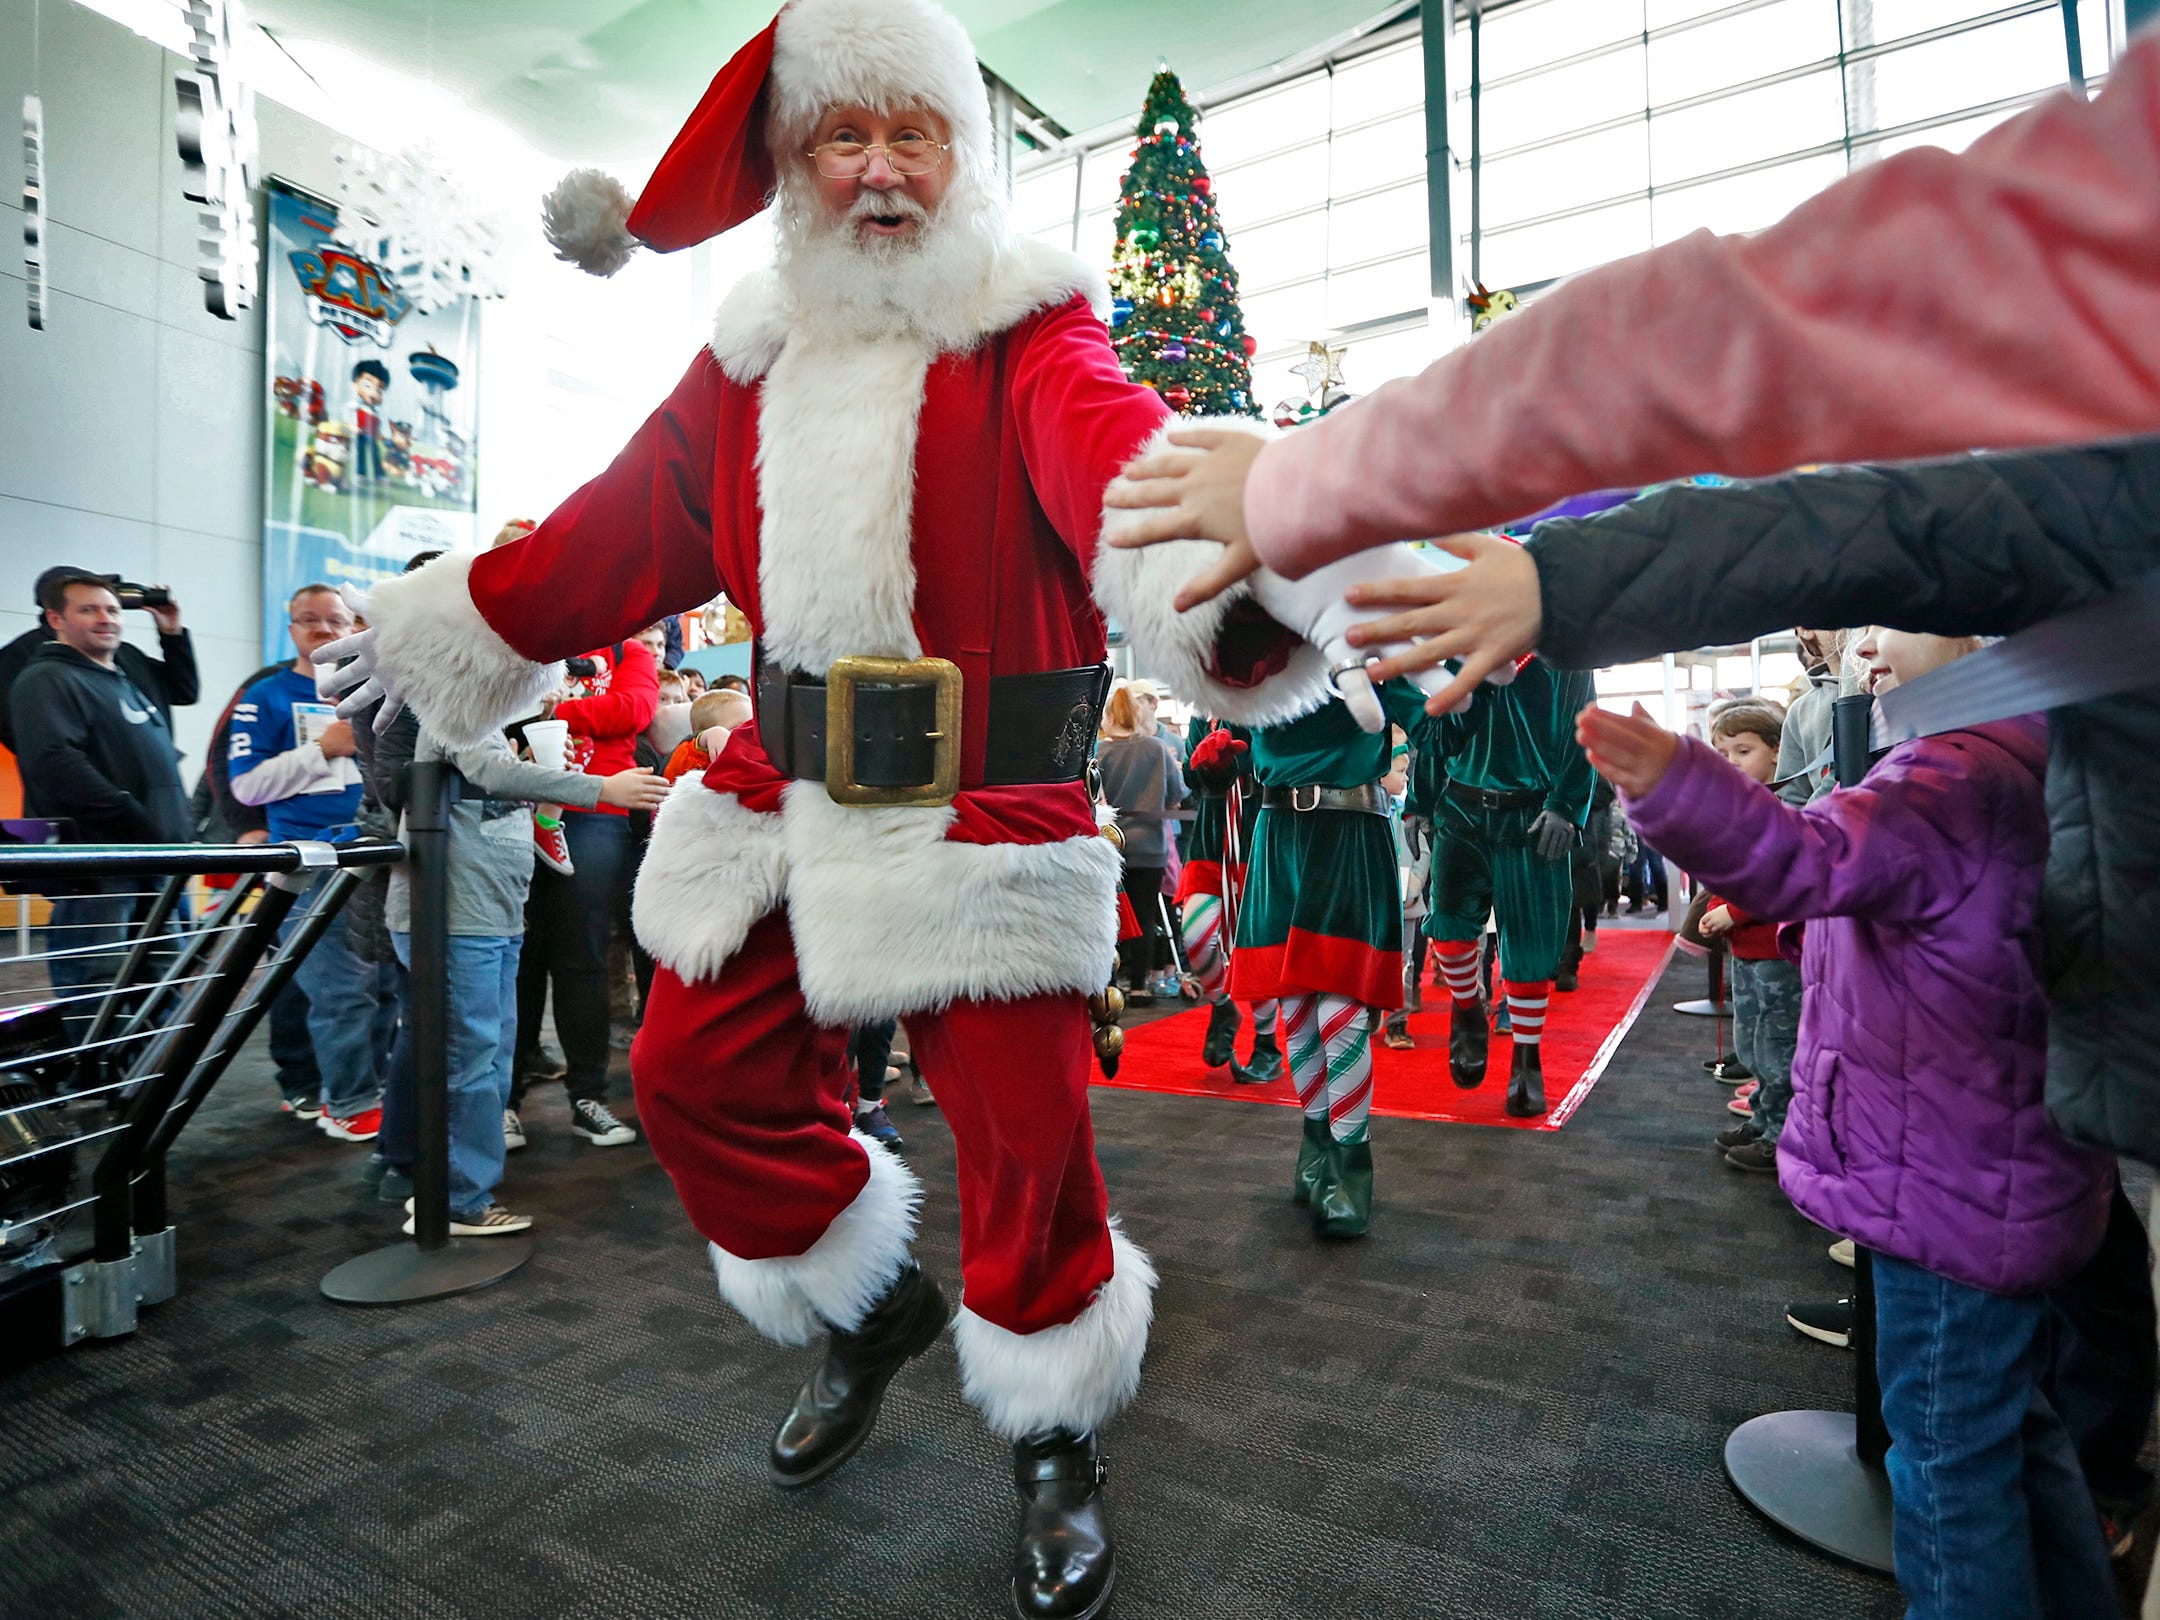 Santa greets the crowd after he arrived at the Children's Museum of Indianapolis in an IndyCar driven by racer Ed Carpenter, Friday, Nov. 23, 2018.